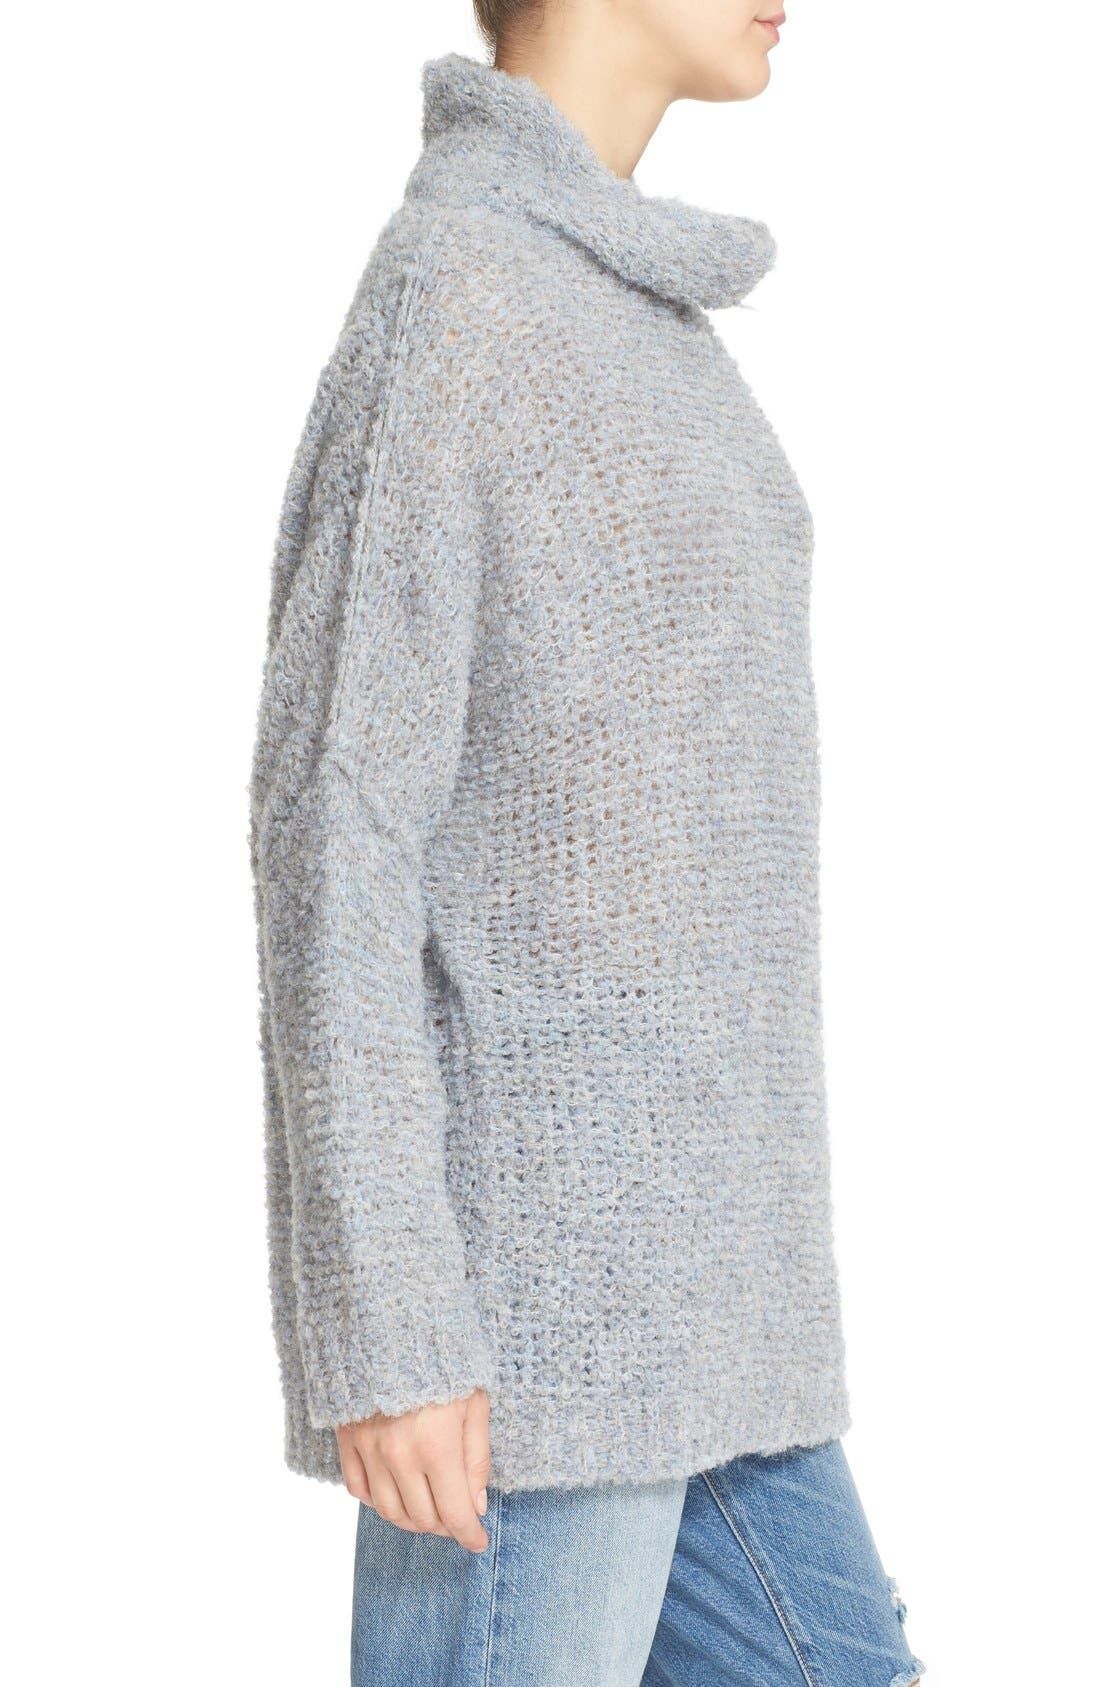 'She's All That' Knit Turtleneck Sweater,                             Alternate thumbnail 8, color,